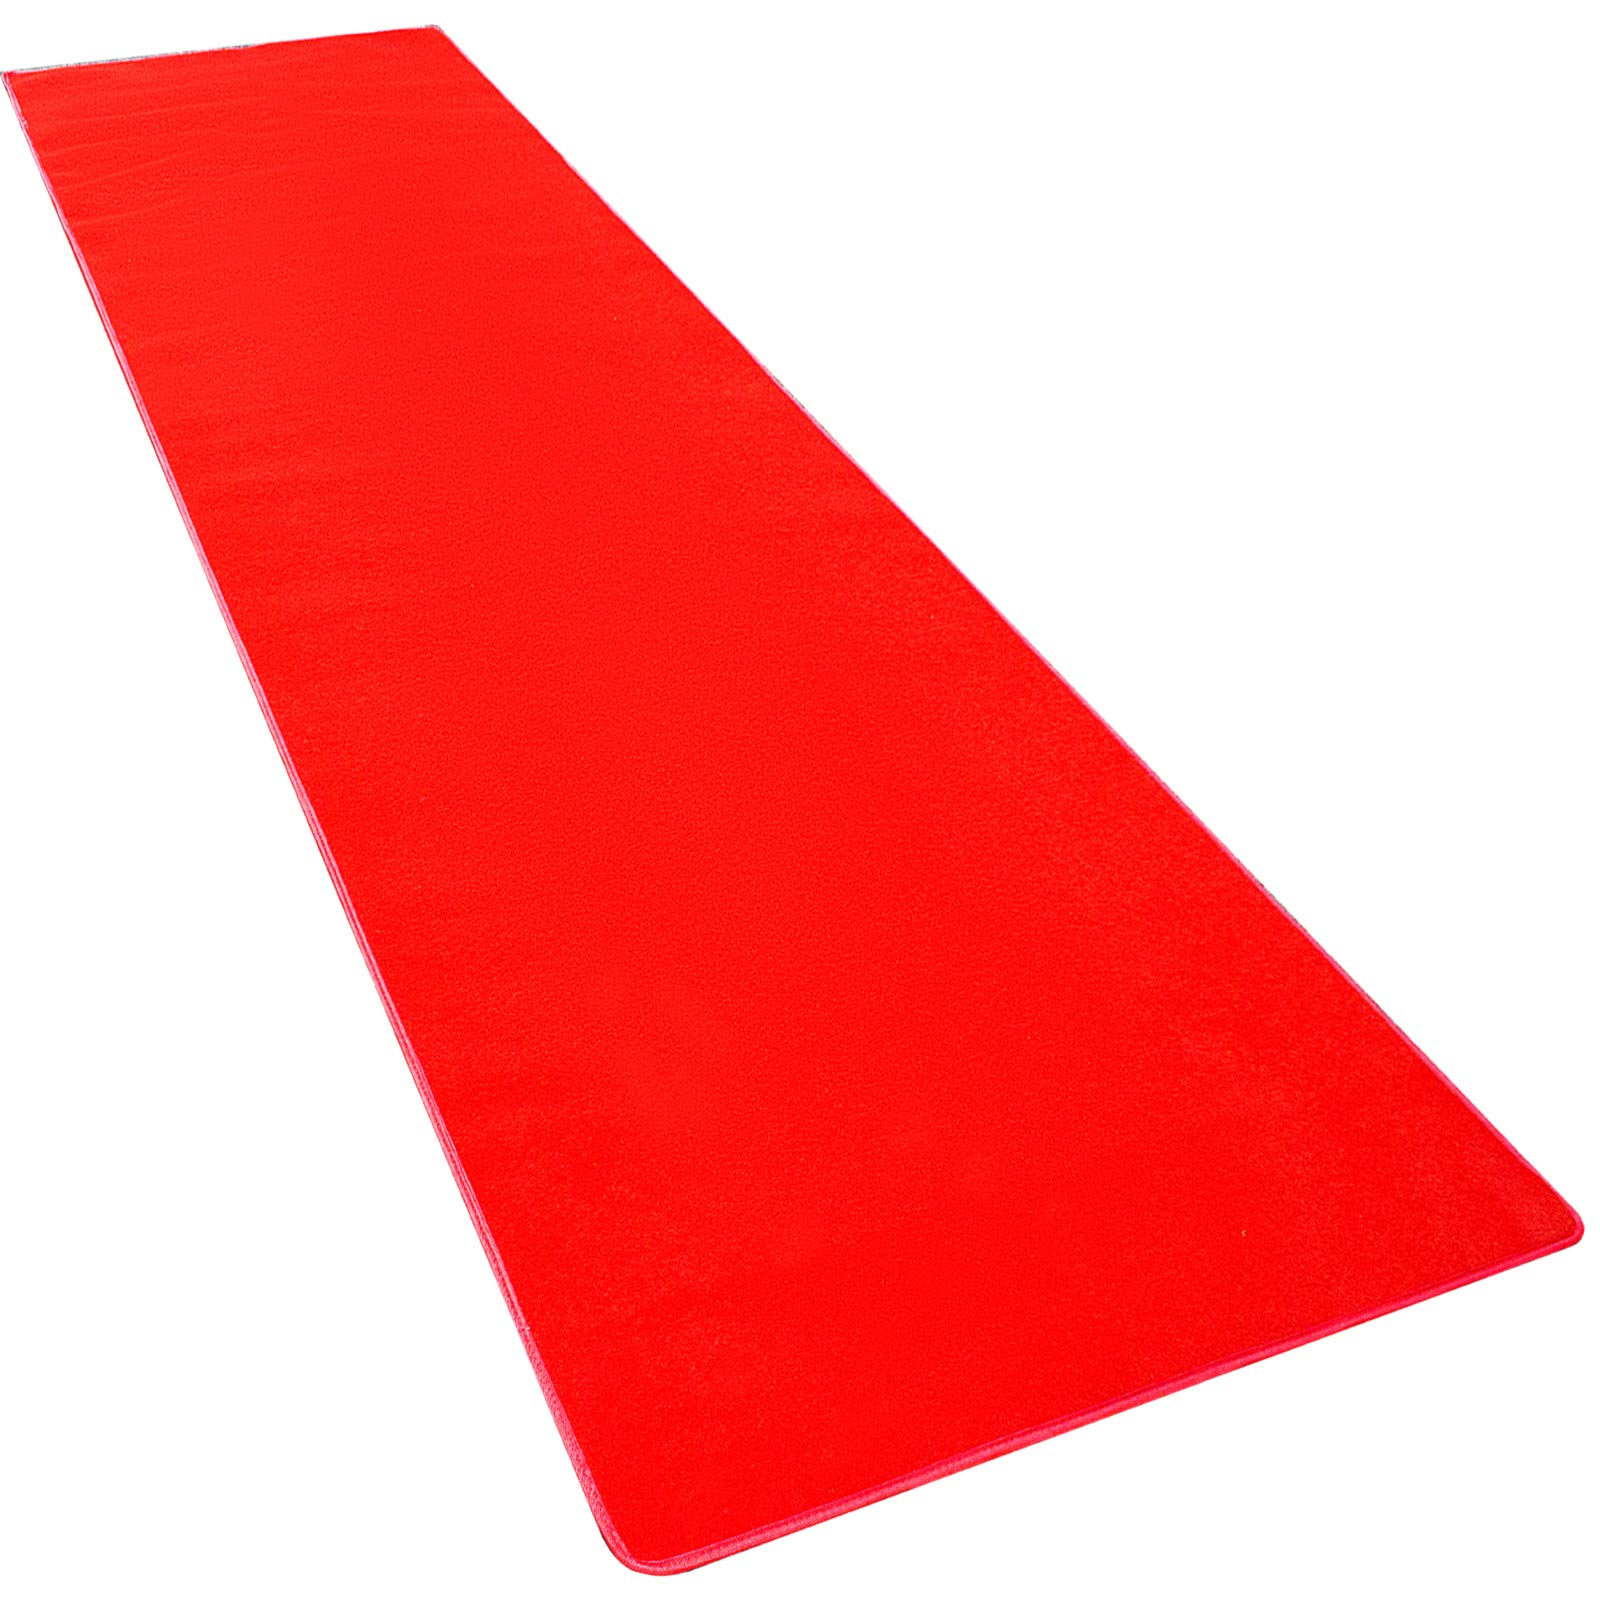 Happybuy 3.3Ft X 13Ft Large Red Carpet Runner Rug Solid TRP Rubber Backed Hollywood Runner Carpet Non-Slip Stair Patio Party Decor Wedding 1M X 4M Aisle Floor Runner Rug - Various Sizes (Red, 3x13Ft) by Happybuy (Image #9)